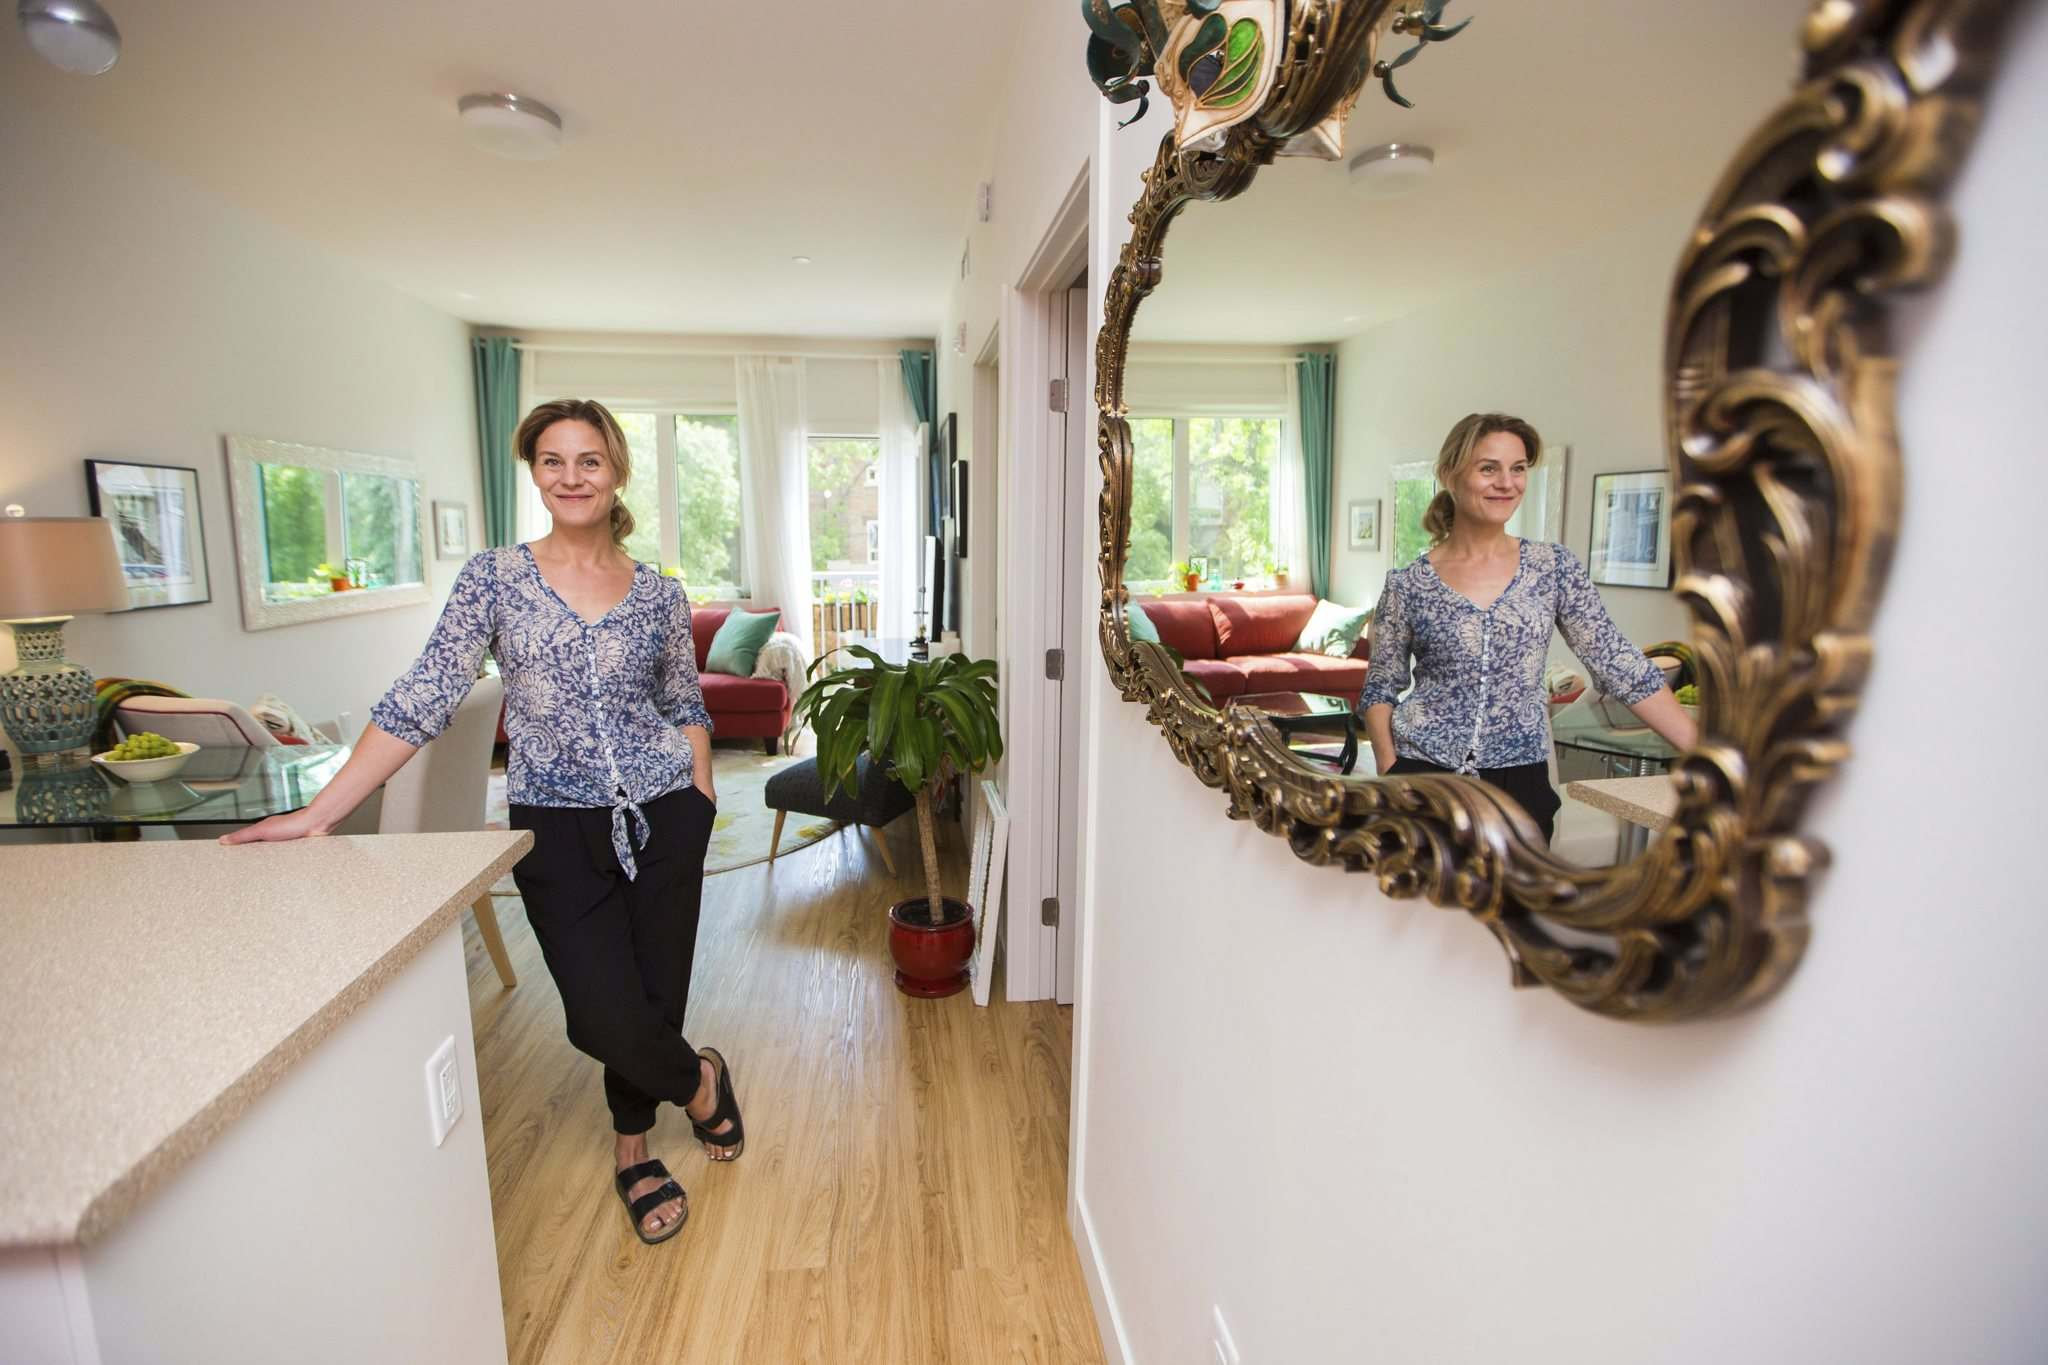 MIKAELA MACKENZIE / WINNIPEG FREE PRESS</p><p>Alicia Johnston showcases her suite at the Old Grace Housing Co-operative, where she moved from St. Norbert. She likes the sense of community and the focus of sustainability.</p>